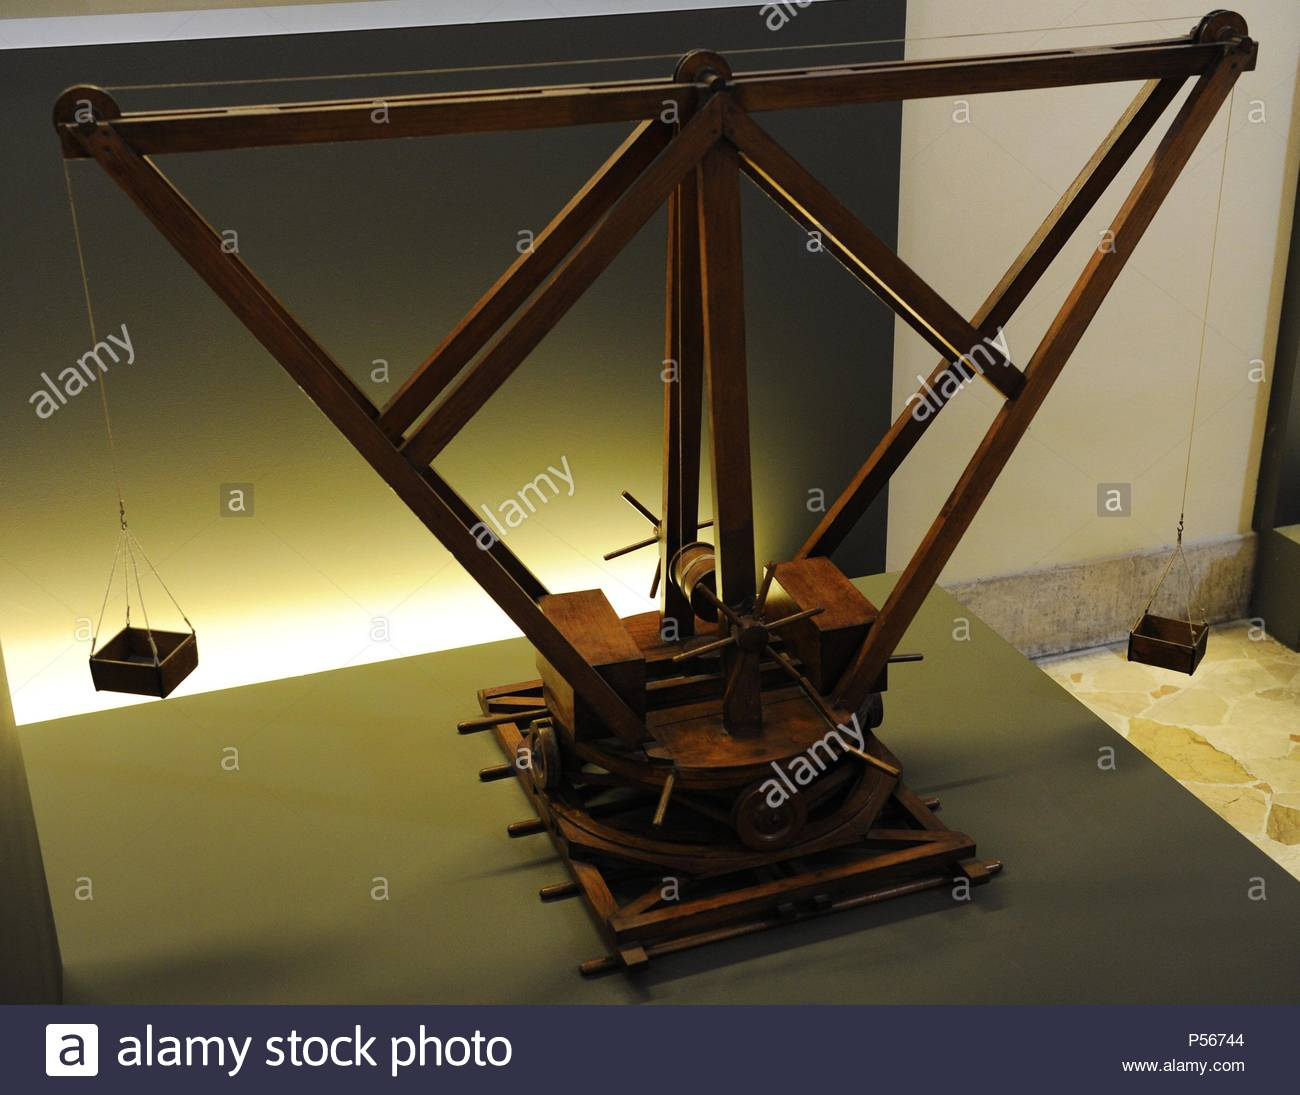 Machine. Crane with central winch. Codex Atlanticus f. 105 bv. This machine is one of the many cranes Da Vinci studied while he was living in Florence. The Science and Technology Museum Leonardo da Vinci. Milan. Italy. - Stock Image